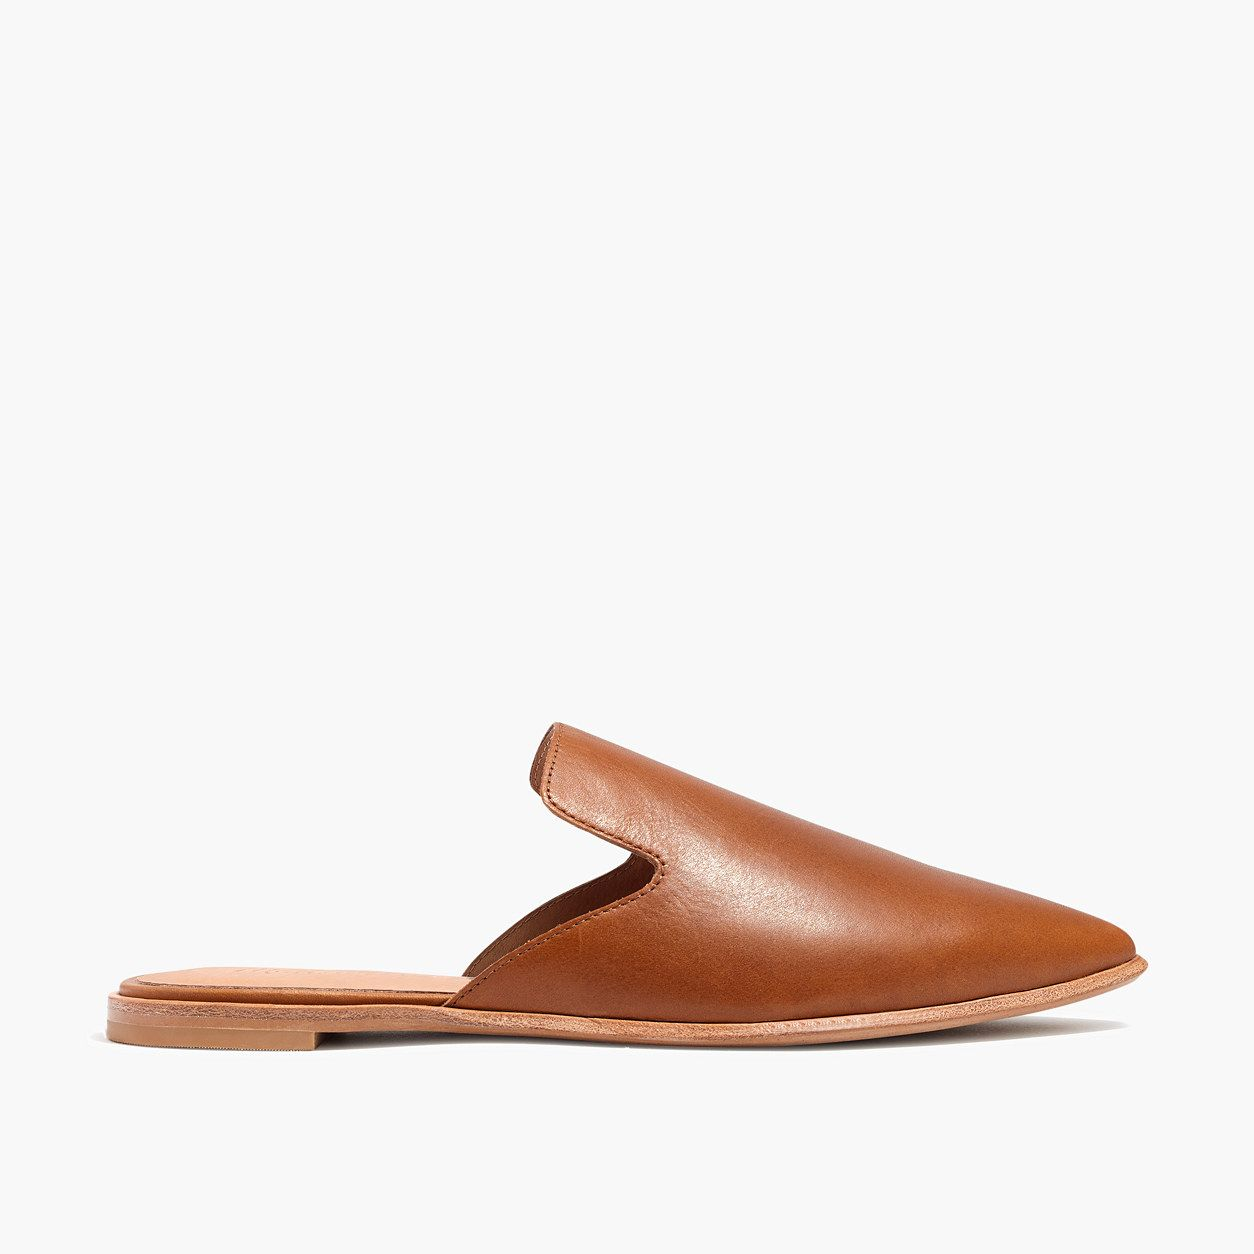 678215a49ed Madewell The Gemma Mule In Leather (Size 9 M